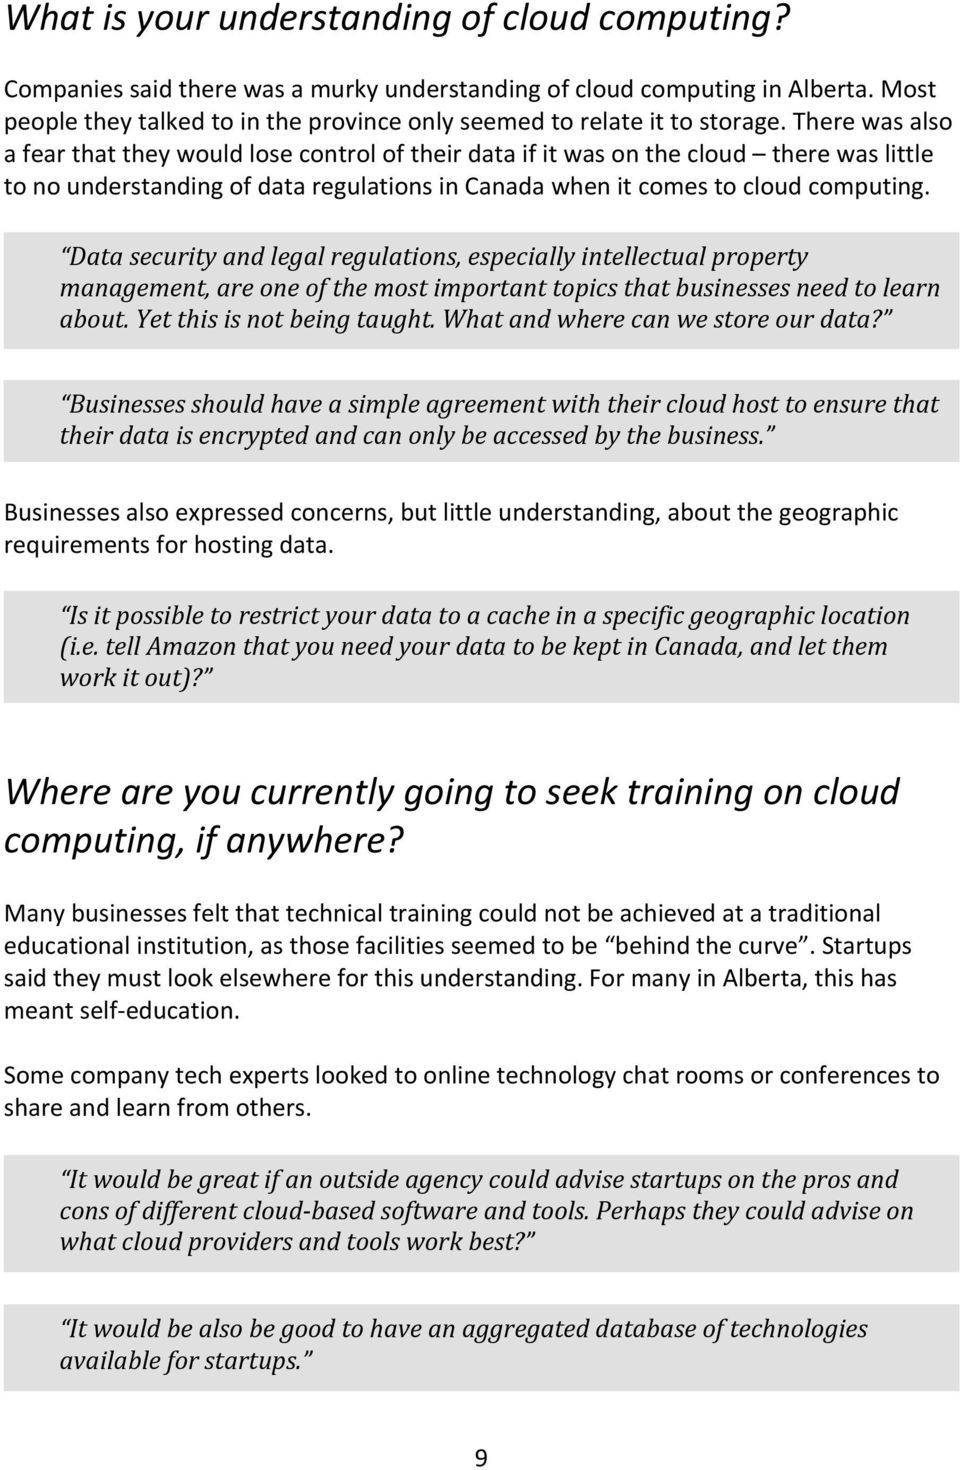 There was also a fear that they would lose control of their data if it was on the cloud there was little to no understanding of data regulations in Canada when it comes to cloud computing.